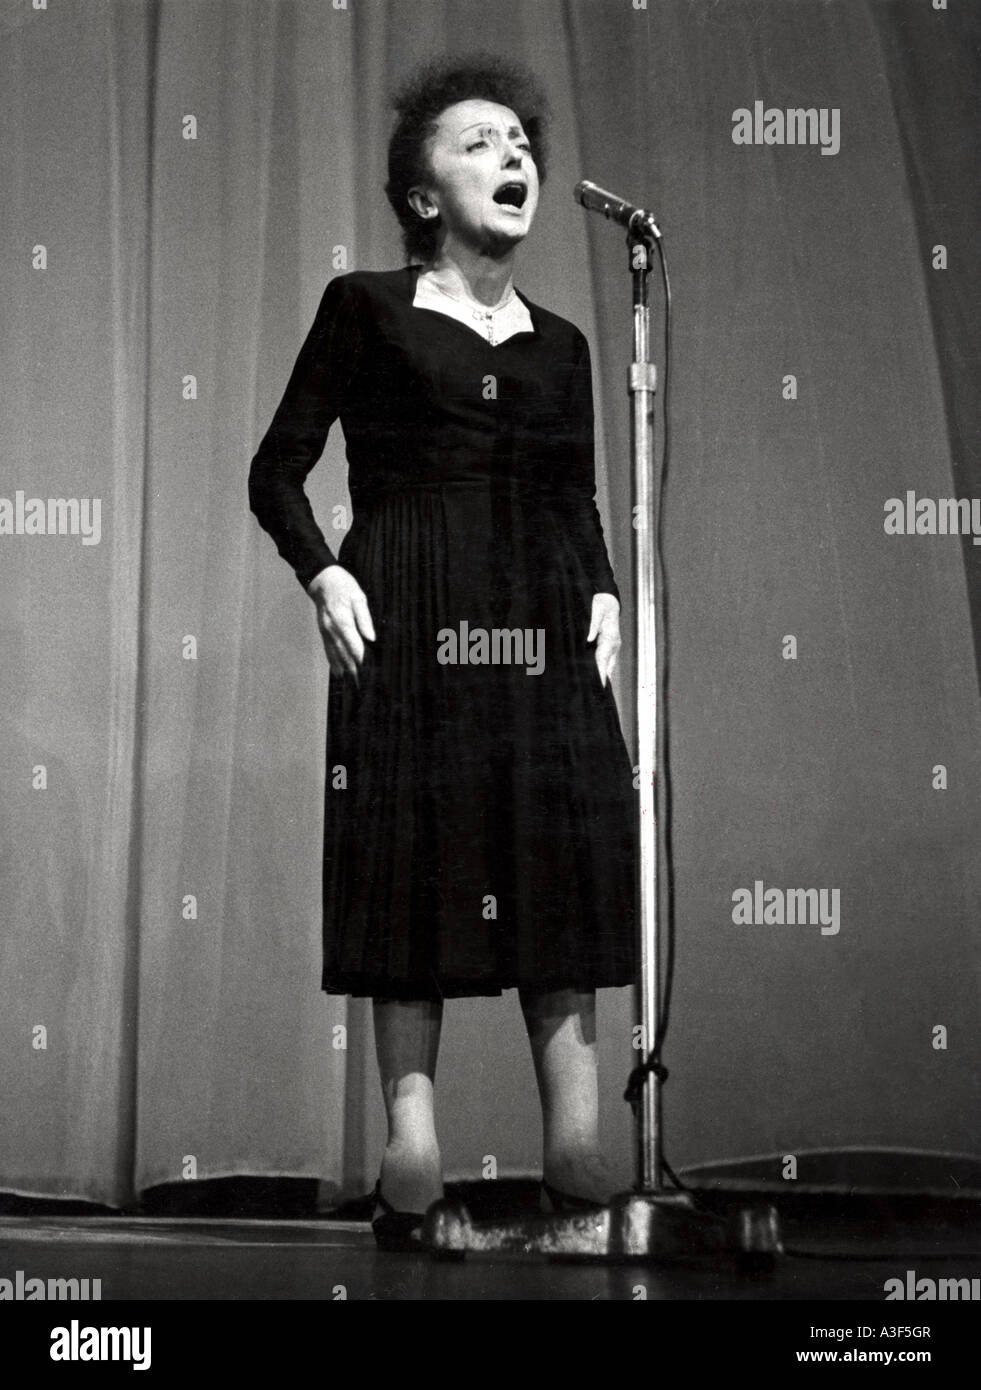 EDITH PIAF French singer - Stock Image